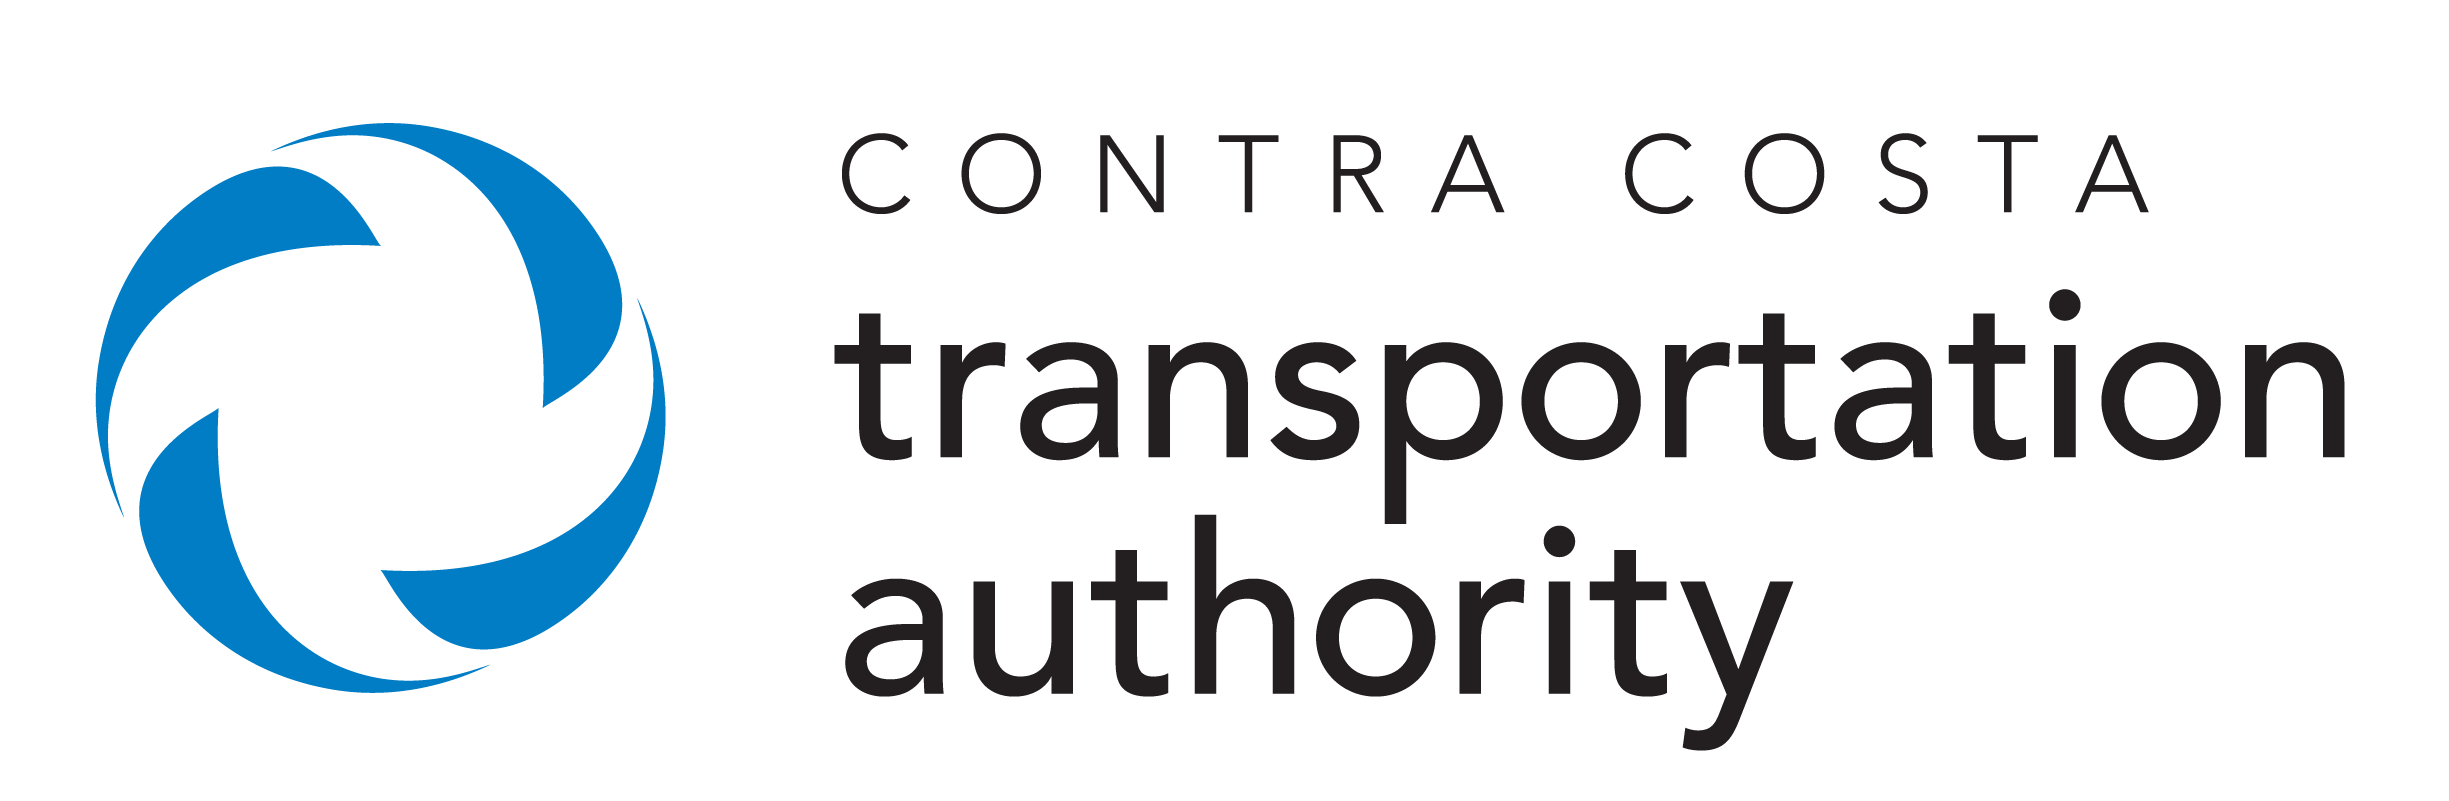 Contra Costa Transportation Authority